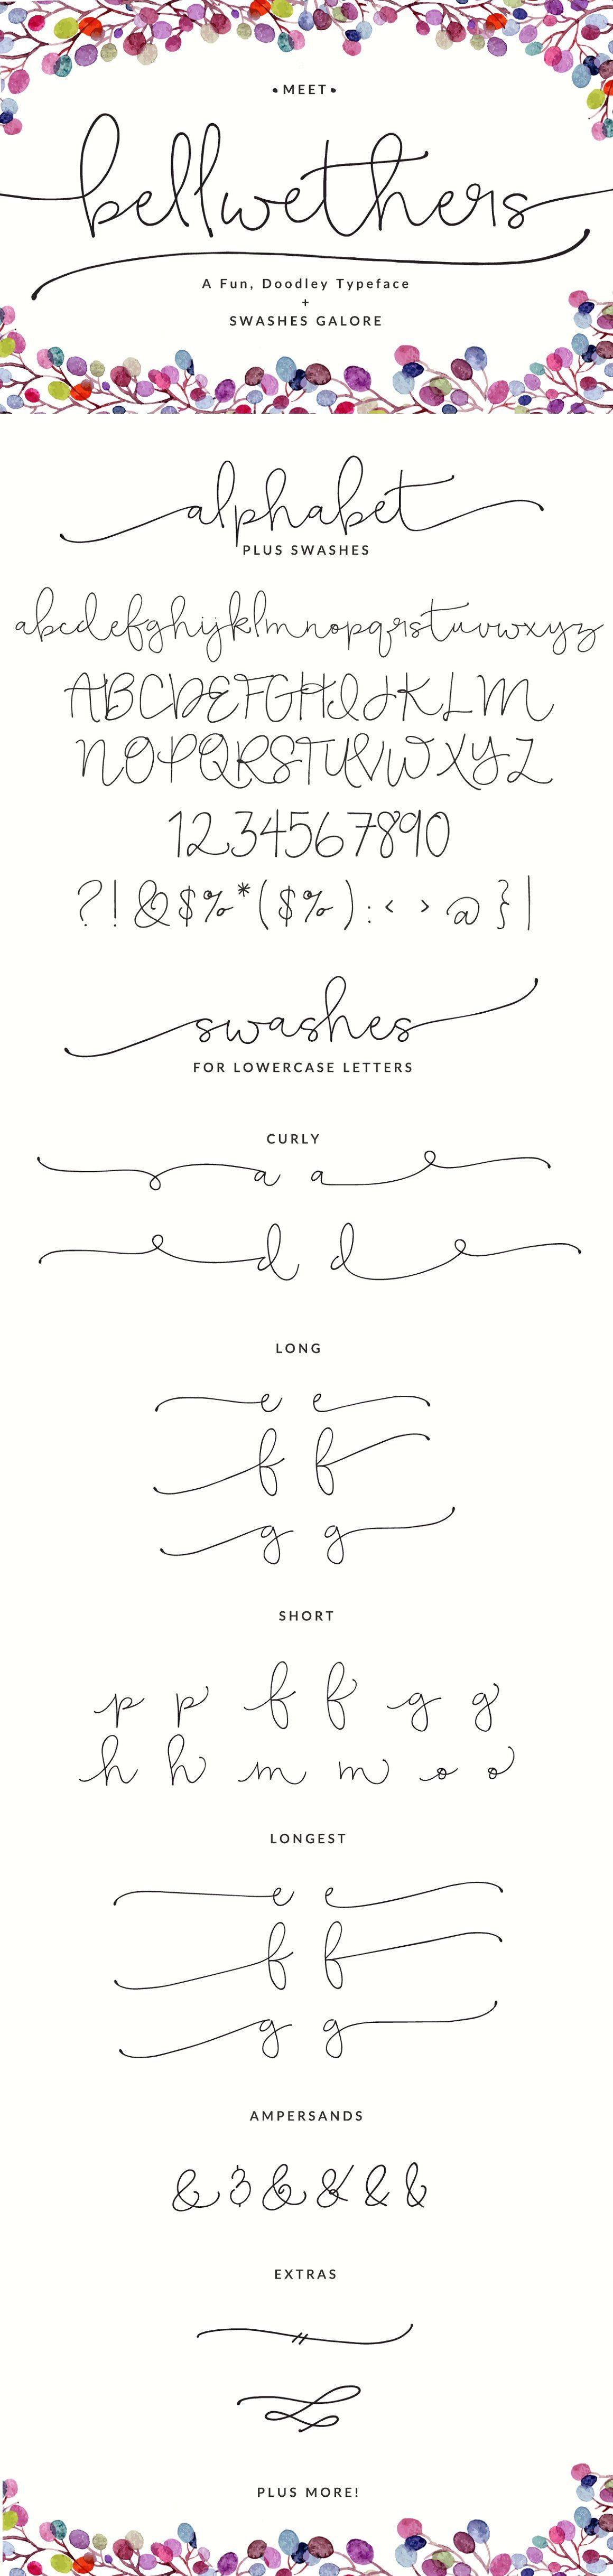 Bellwethers Script Font Hand Lettering Handwritten Typography Fonts Cursive